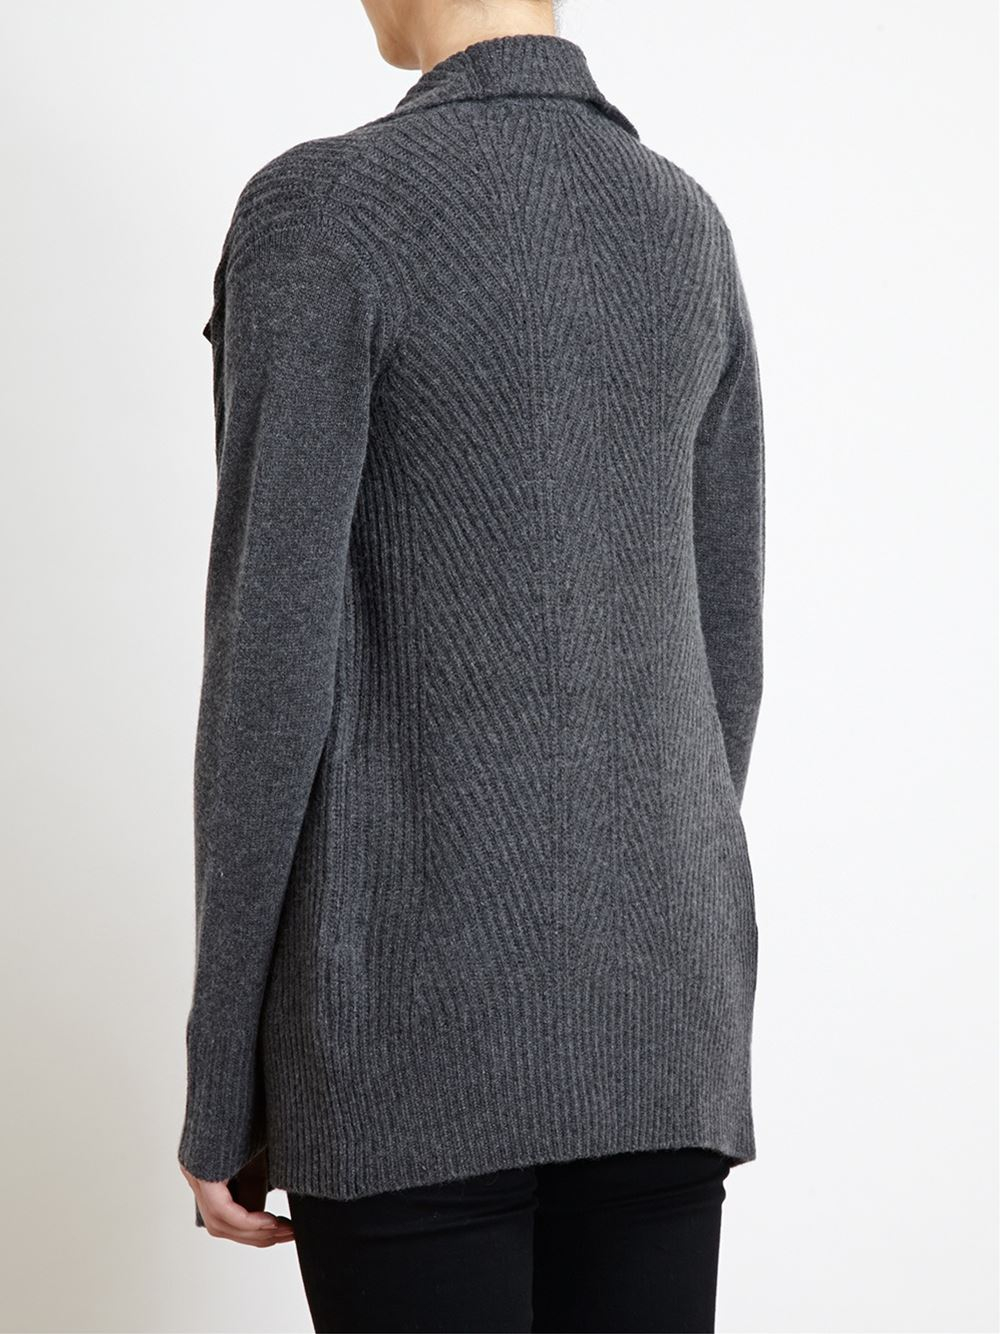 Gray Crew Neck Sweater Women S